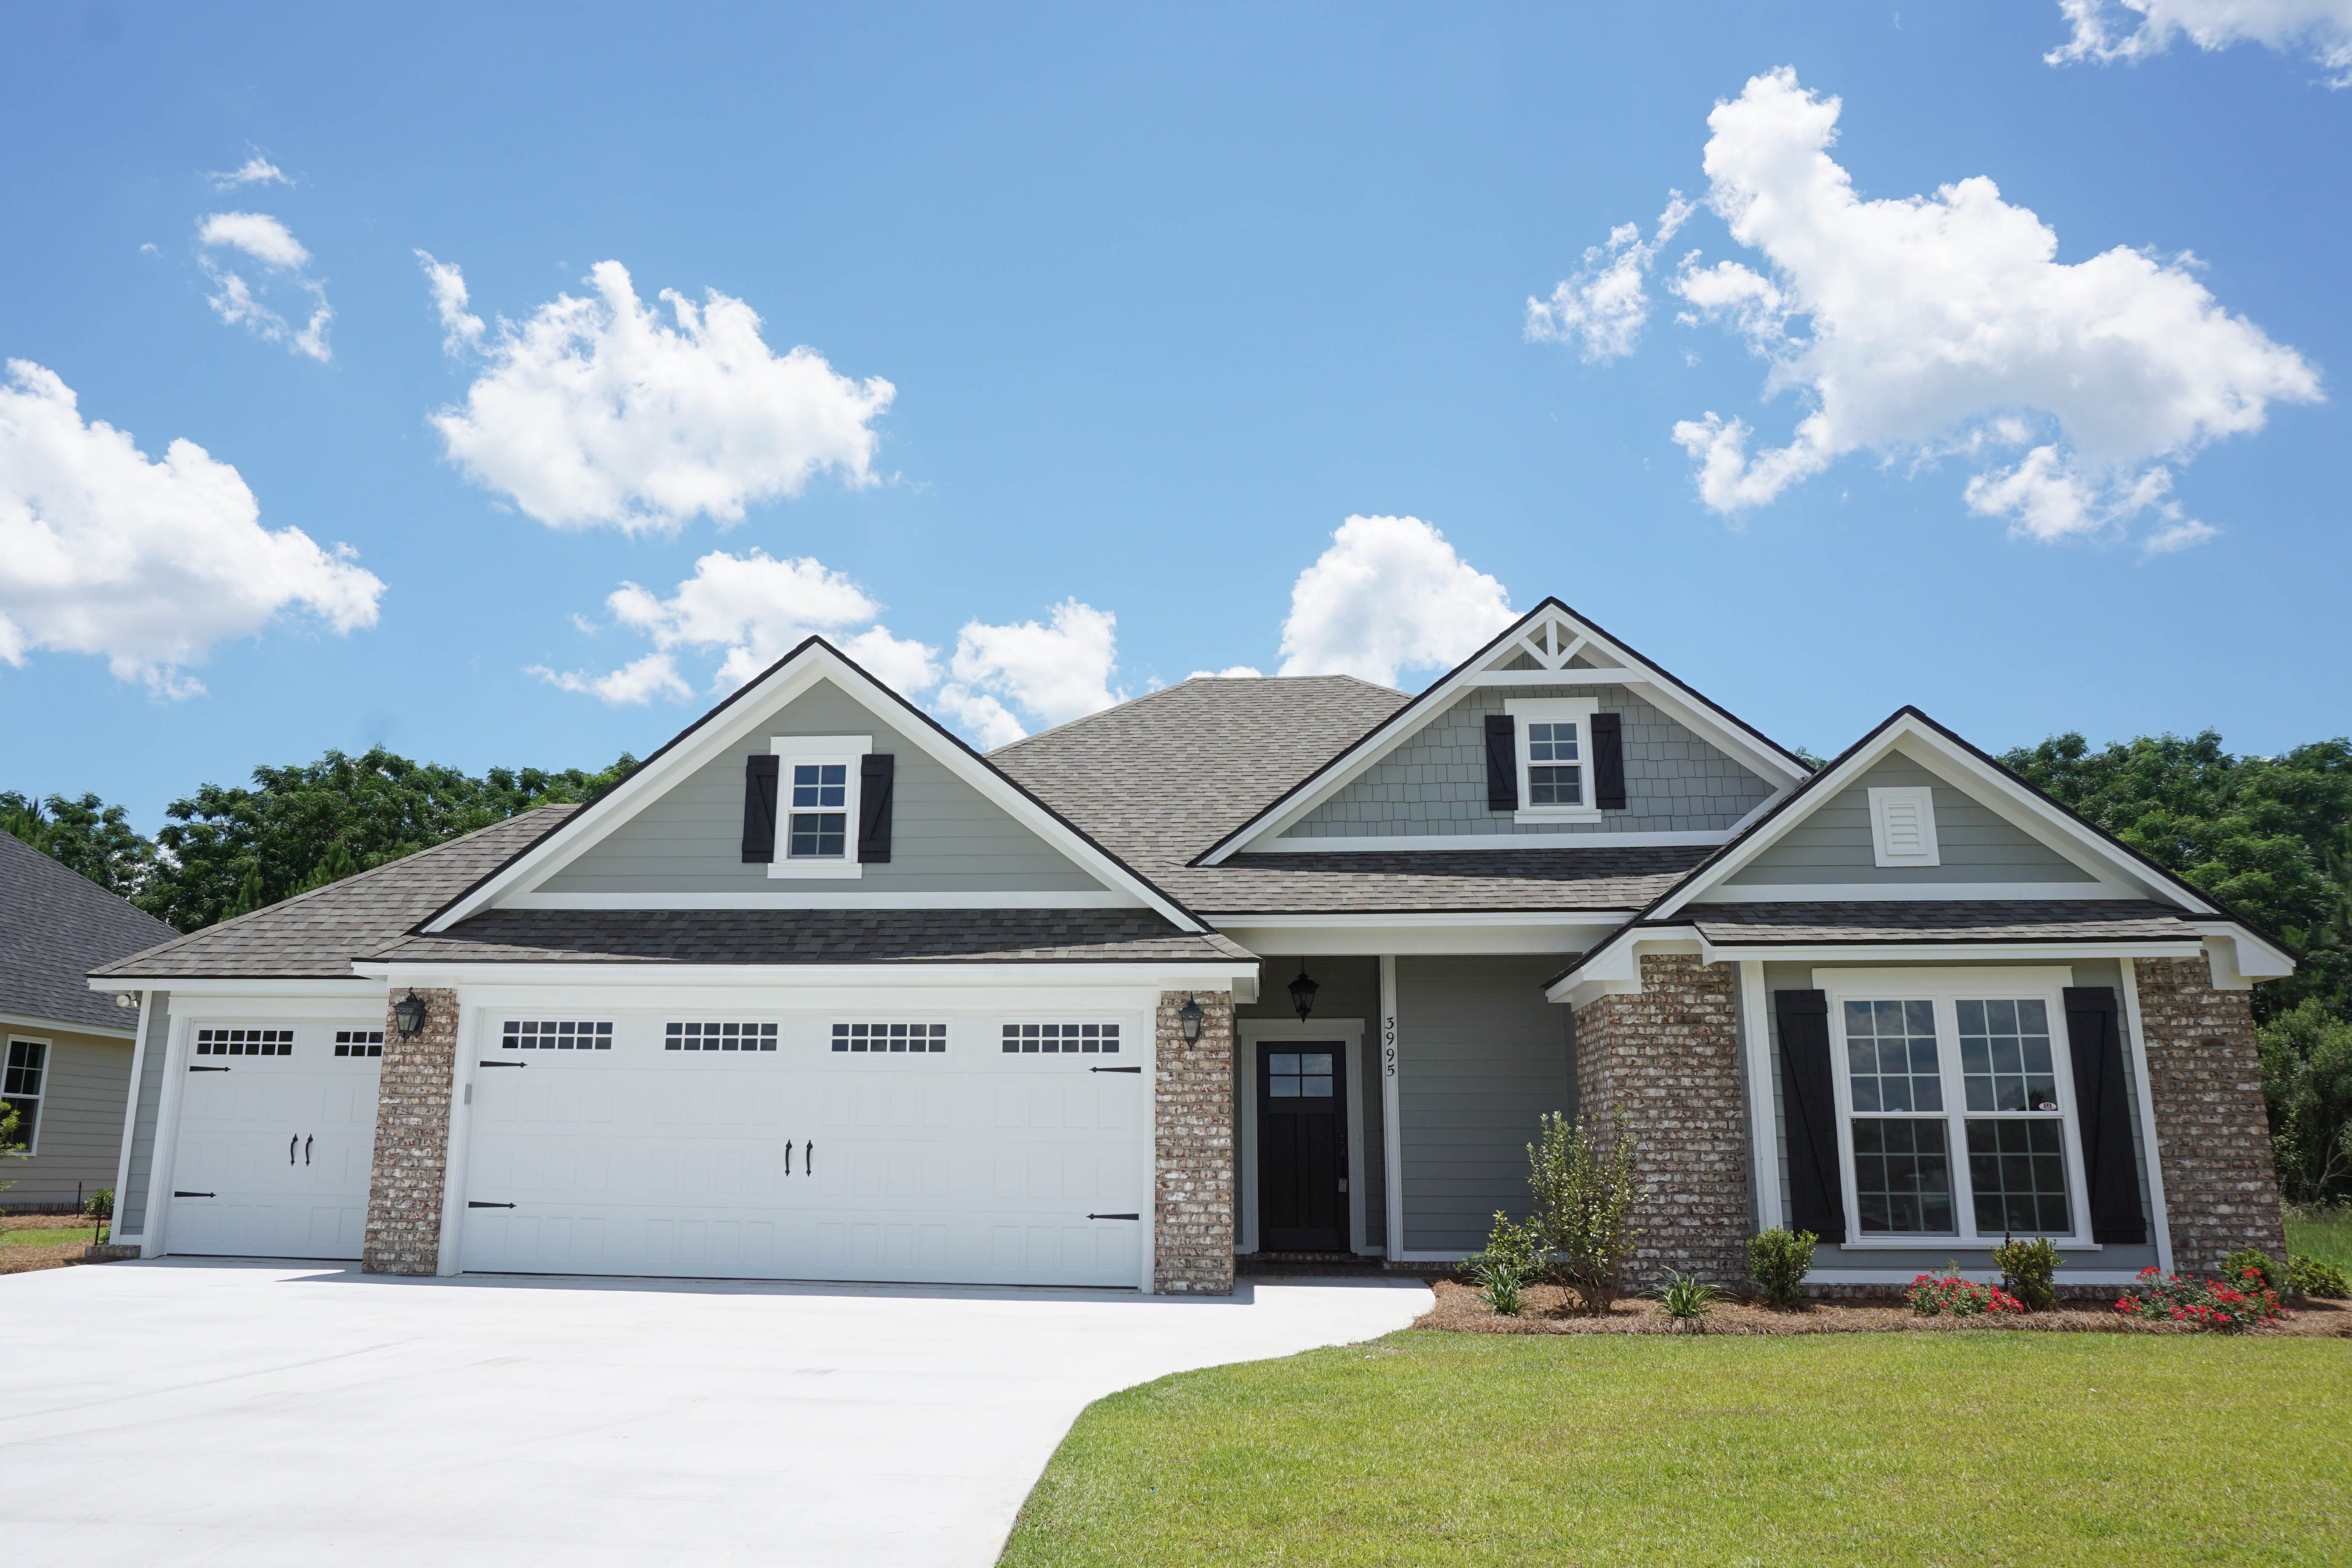 Kinderlou Is A Gated Community In Valdosta Ga Check Out This New